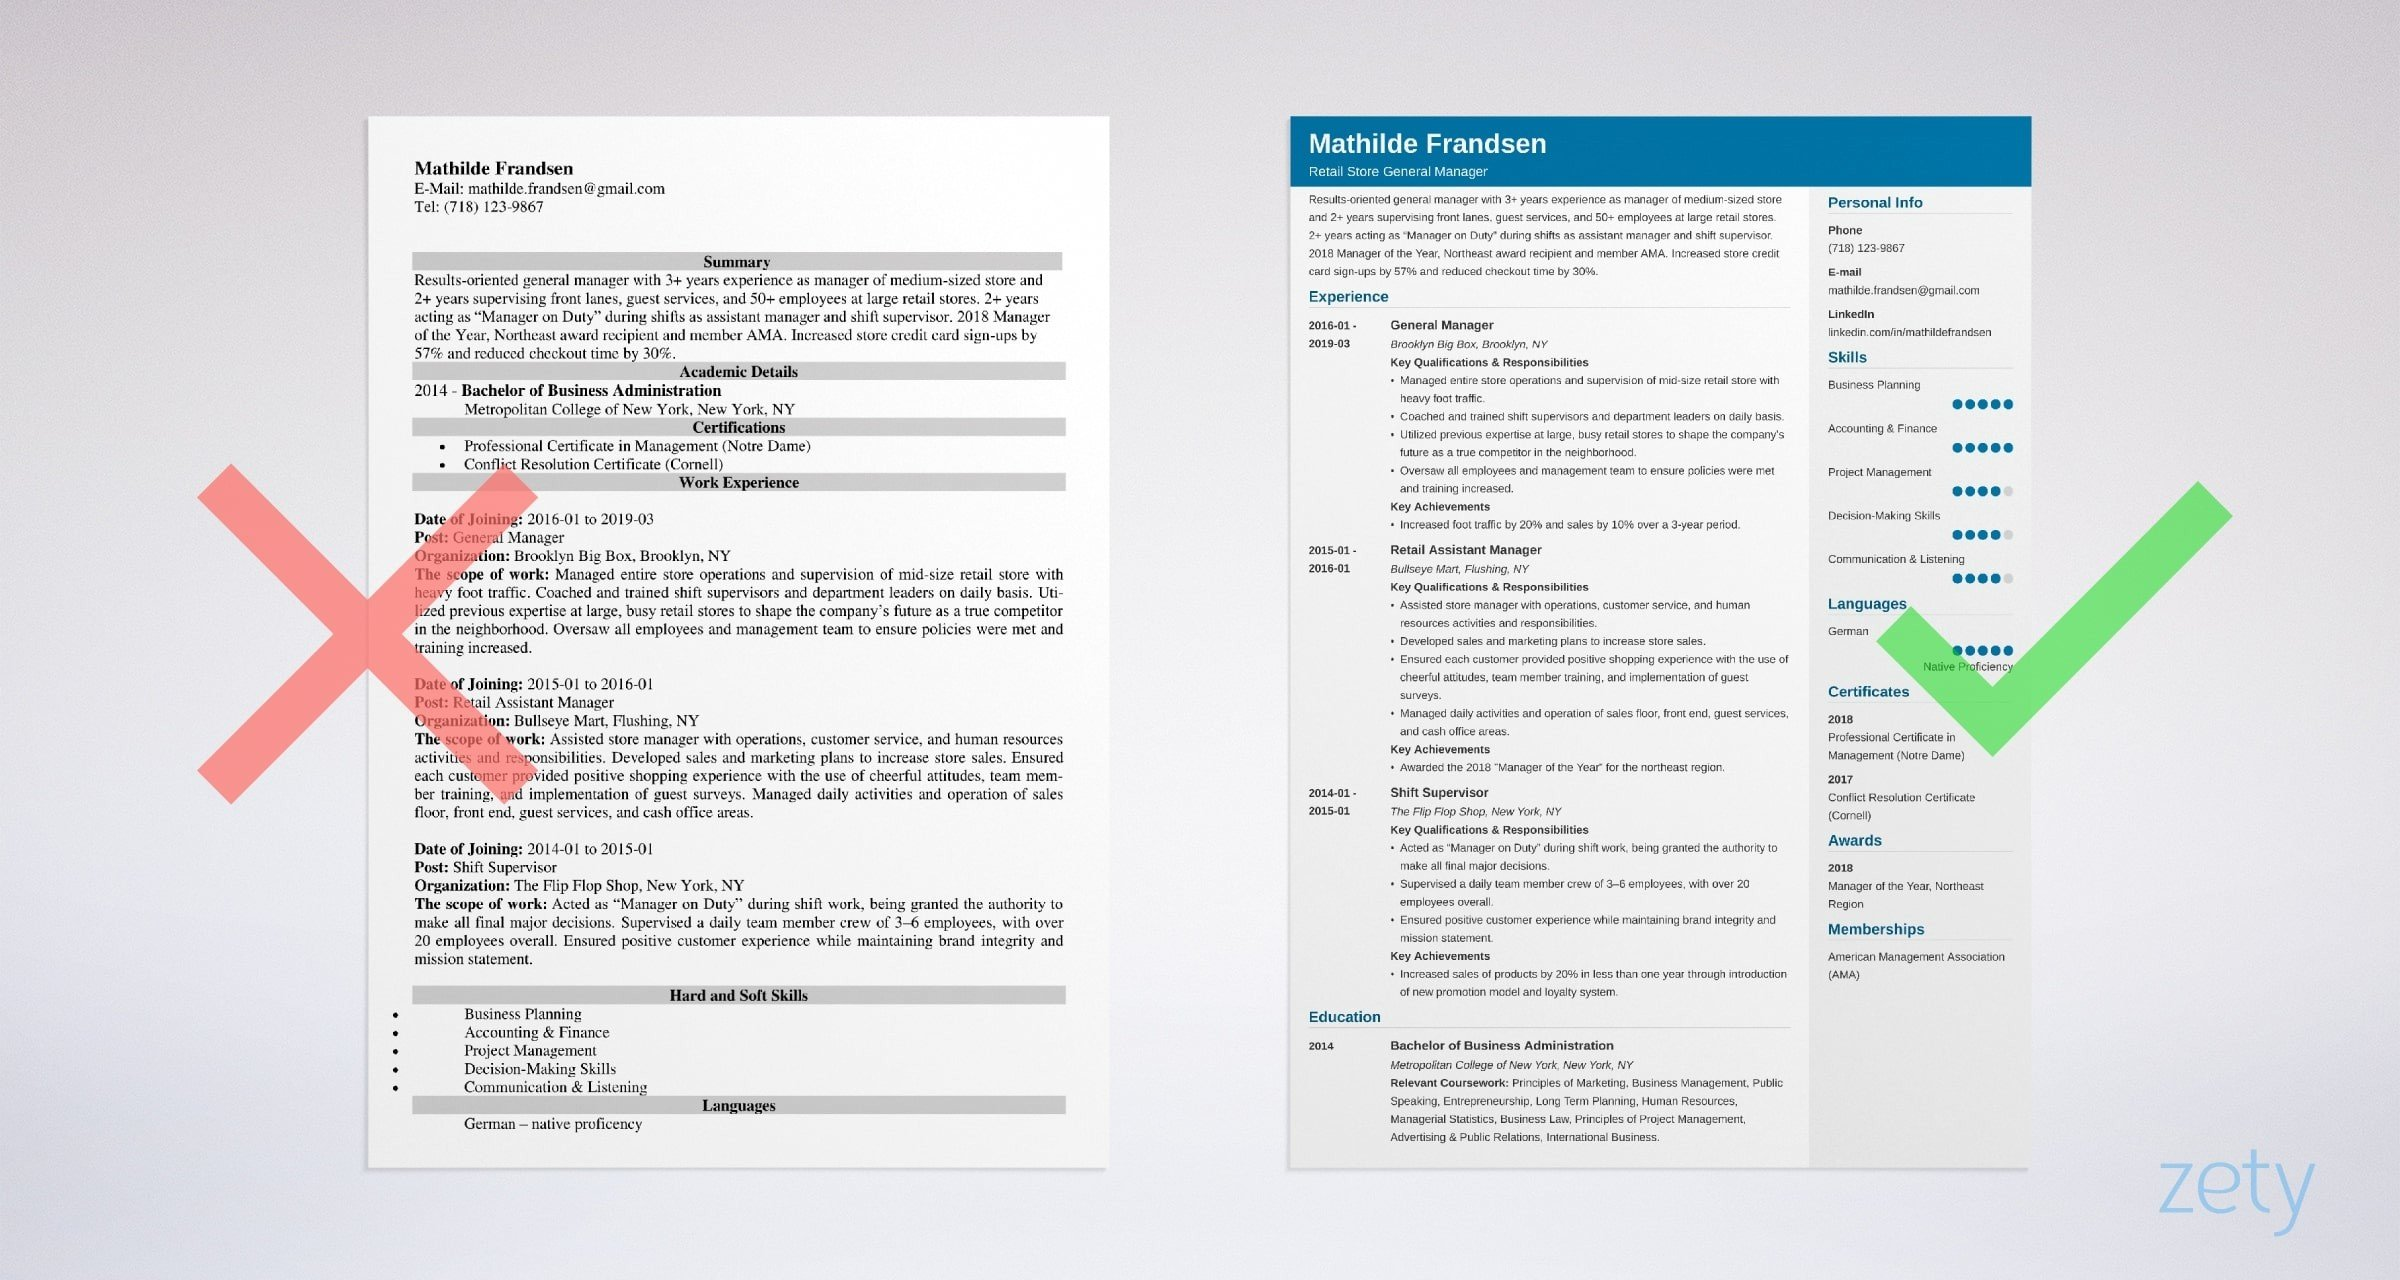 General Manager Resume: Sample & Complete Guide [20+ Examples]